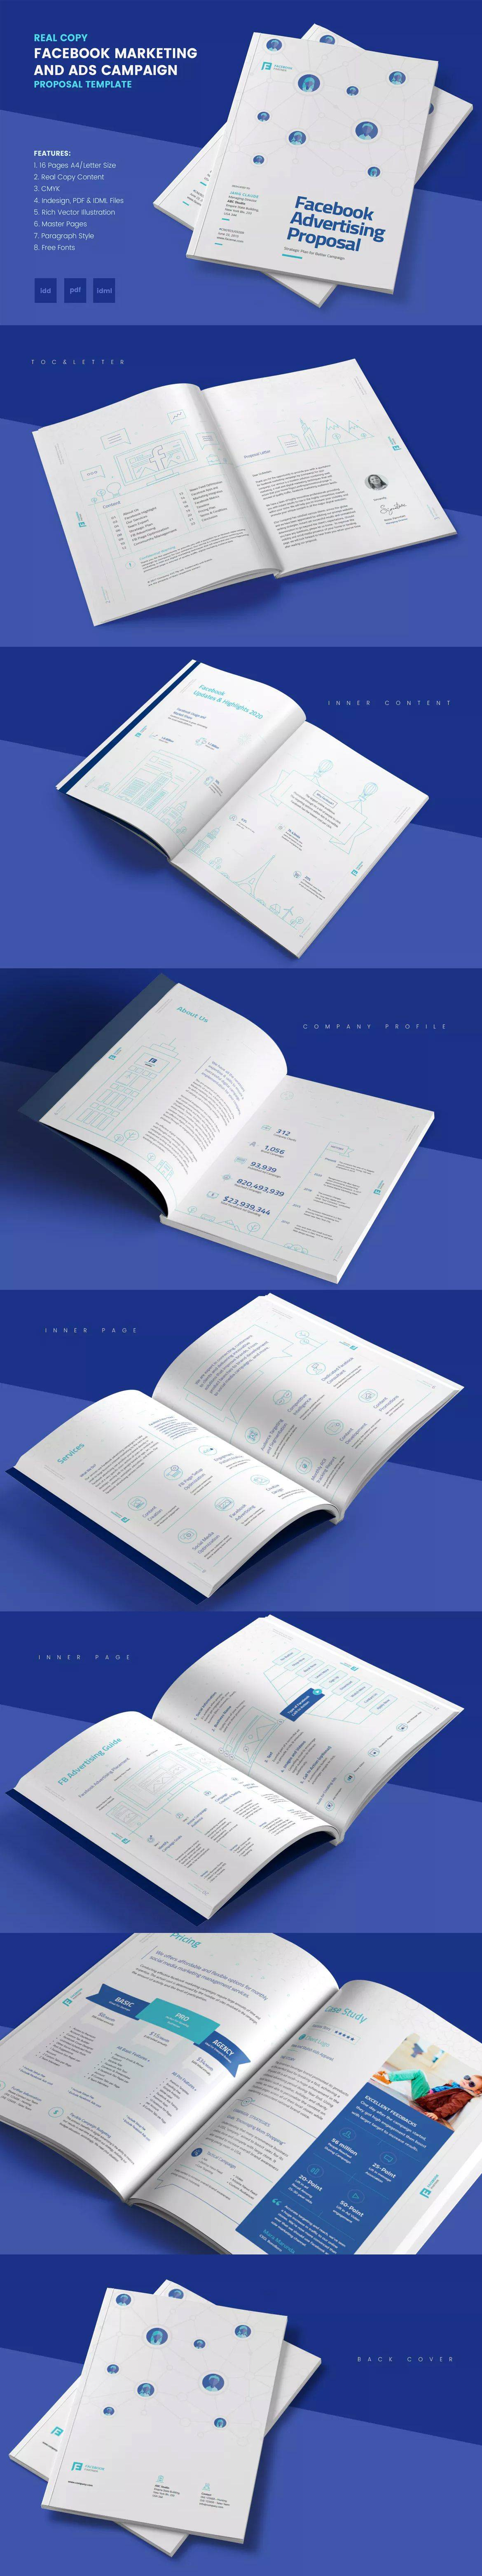 Marketing Proposal Template Indesign